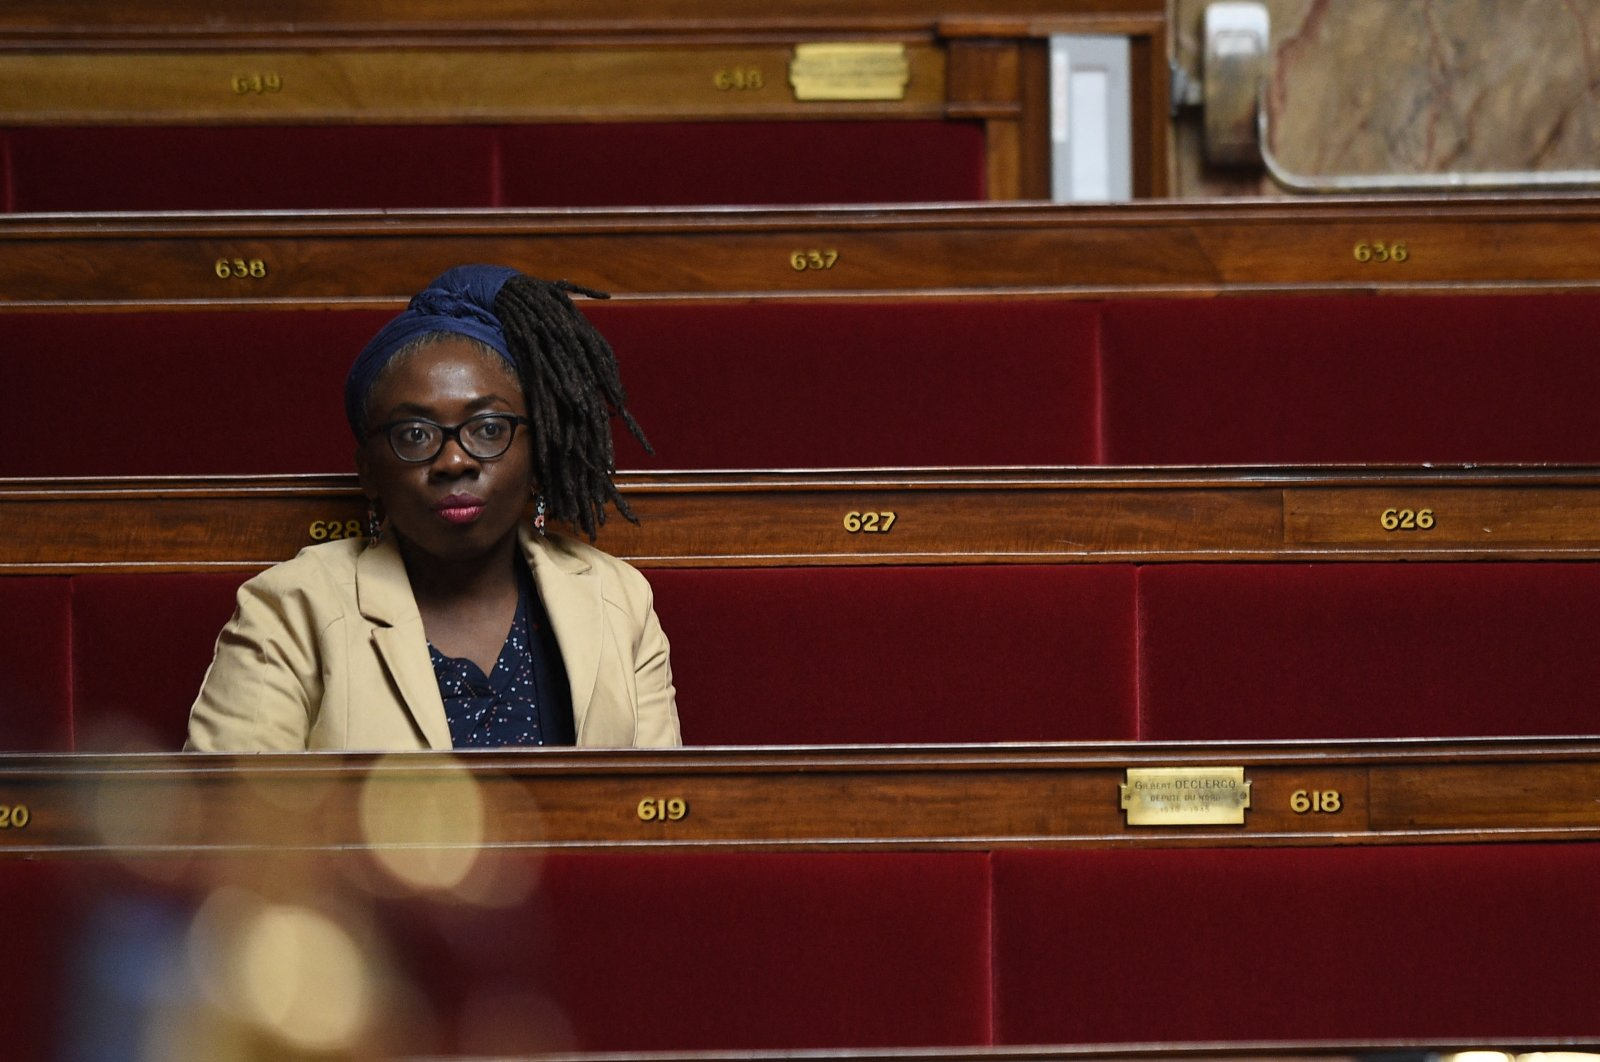 French leftist party La France Insoumise (LFI) MP Daniele Obono during a session of questions to the government at the National Assembly in Paris, France on May 12, 2020. (Reuters Photo)